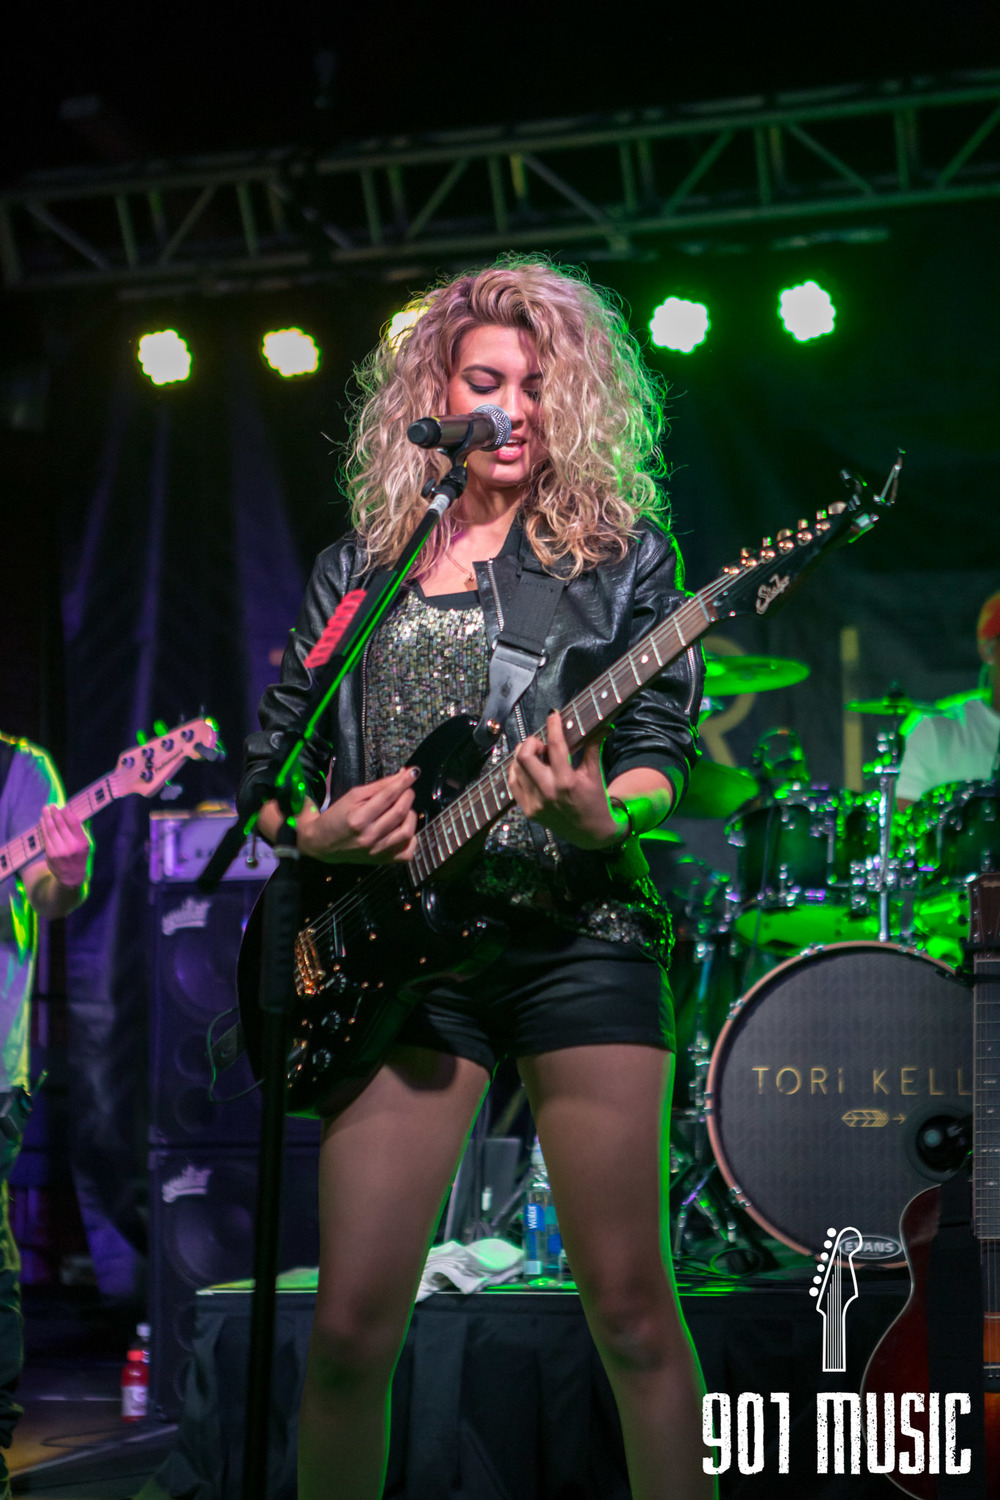 na-0616-ToriKelly-4.jpg